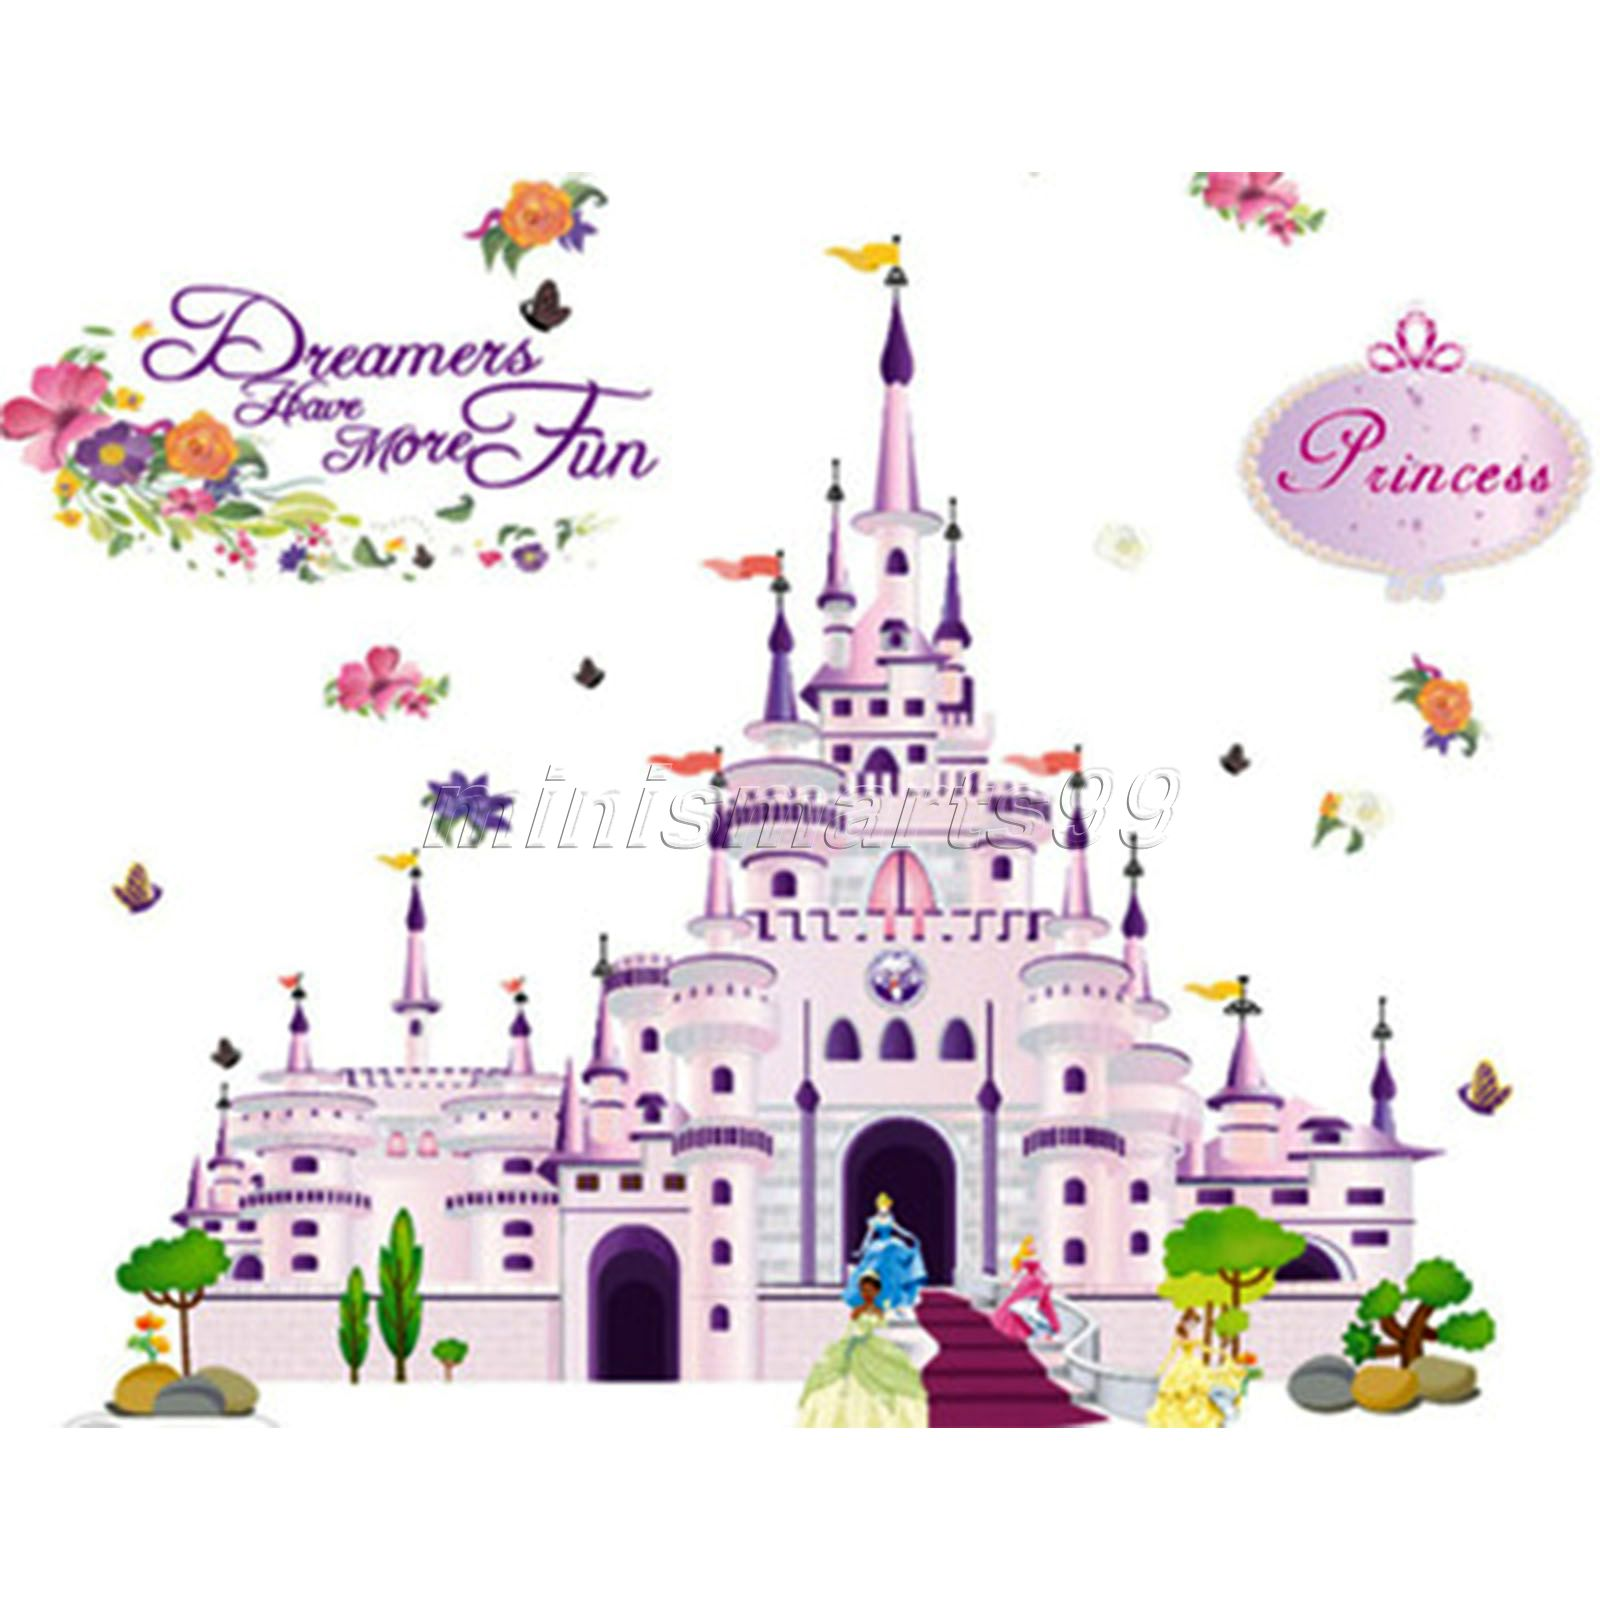 Waterproof Princess Castle Girl Sticker Door Glass Stickers Wall Decal Home Decoration Vinyl Art Pvc Posters for Kids Room